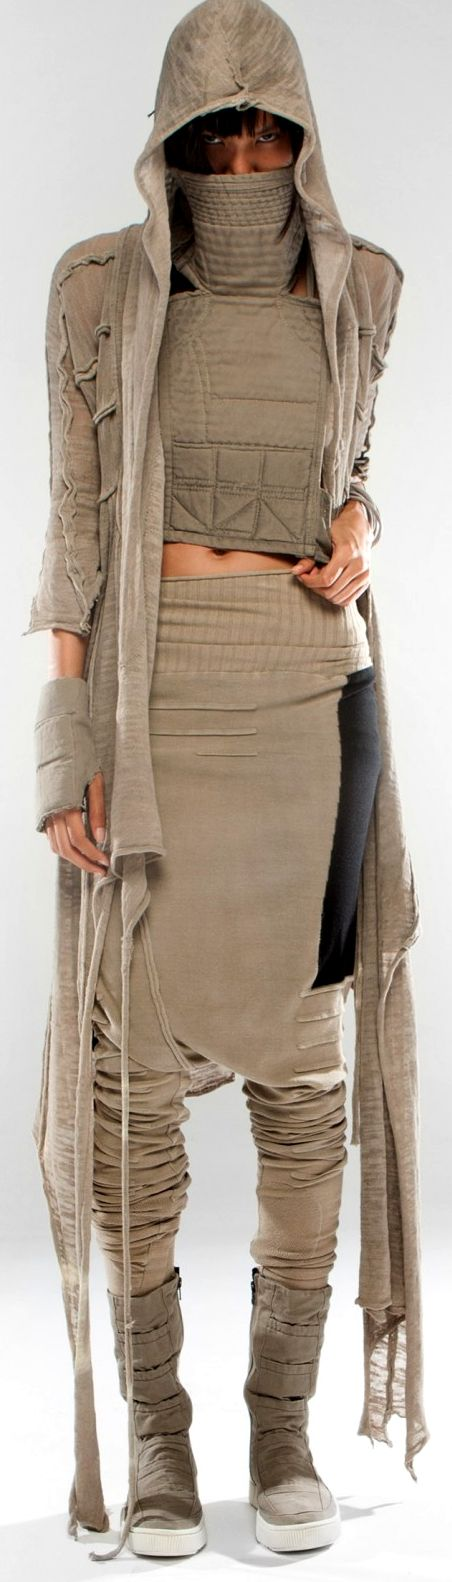 "look at skirt - inspiration (but not the ""back in"" part at the bottom) make out of old hoodies/stretch cotton tops or top of textured yoga pants for waist band part"